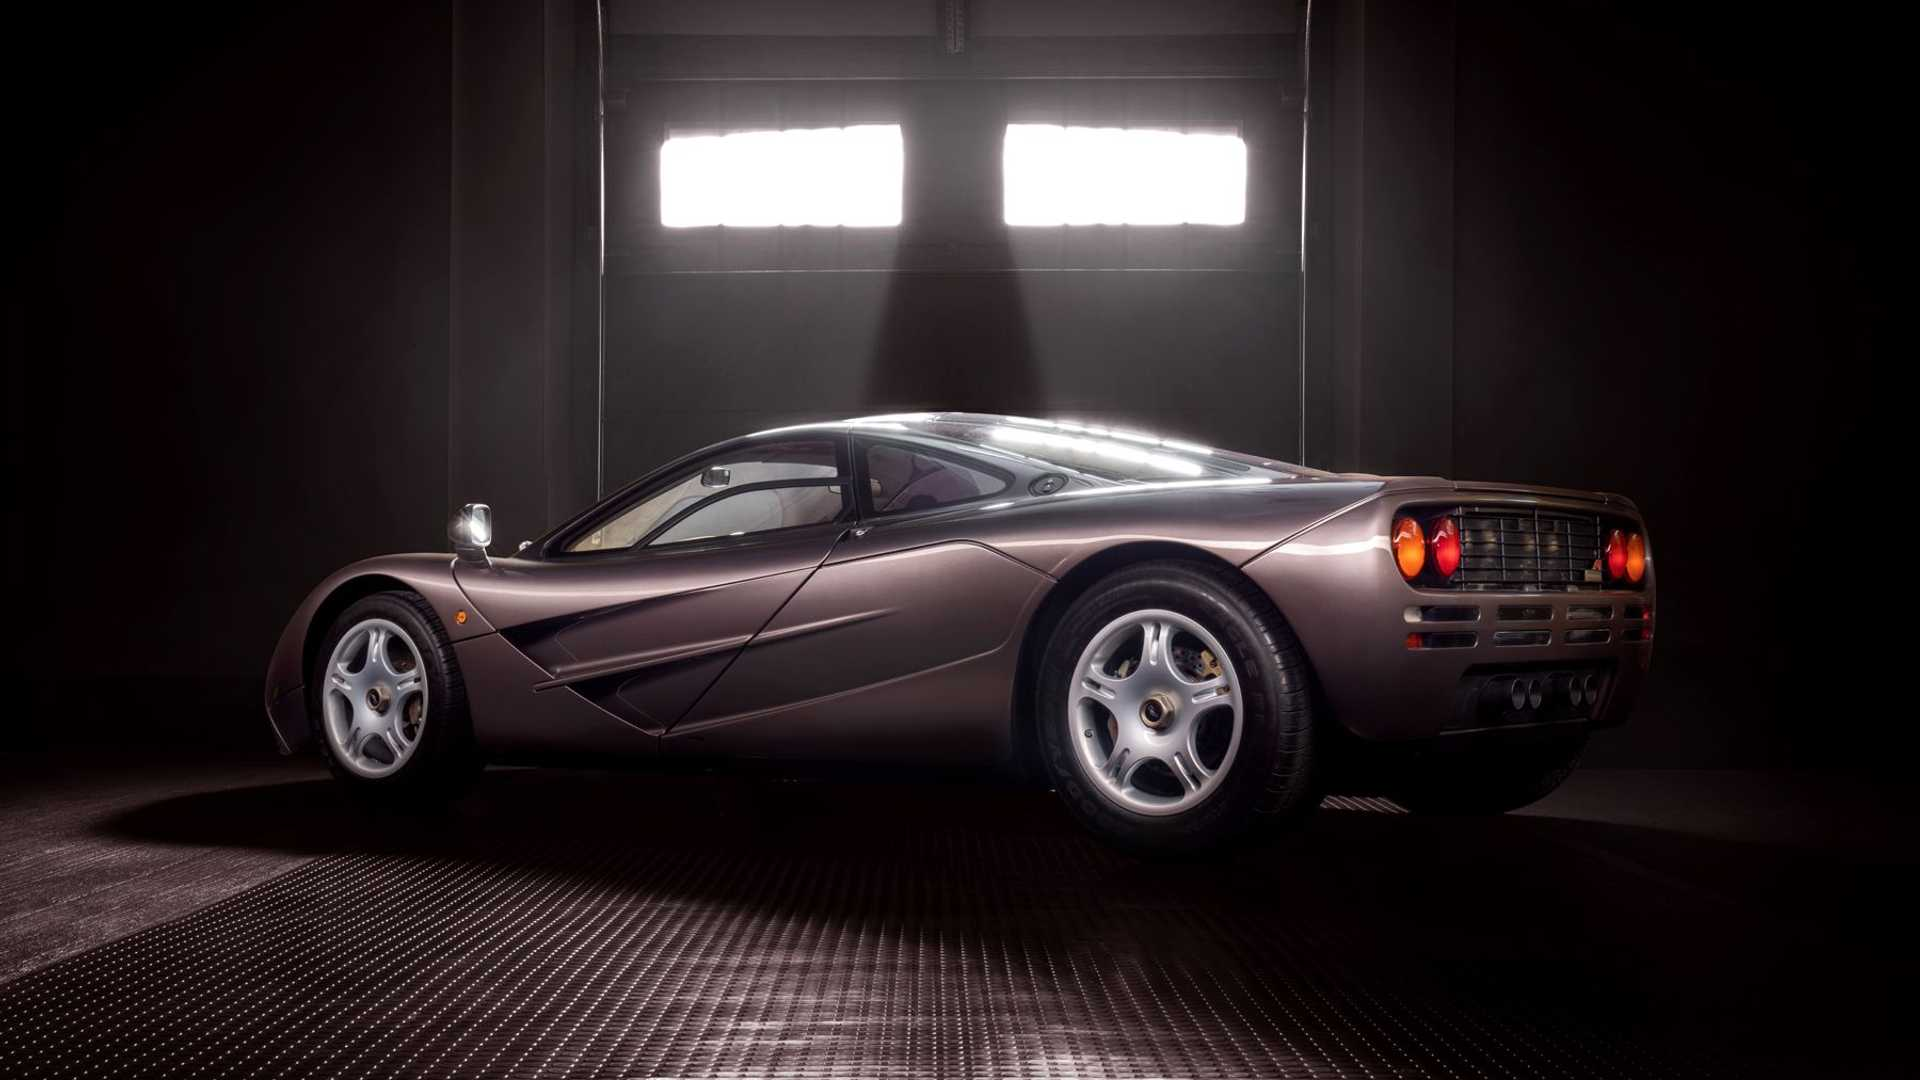 1995 McLaren F1 Gooding And Company Auction 2020 Three Quarters Rear